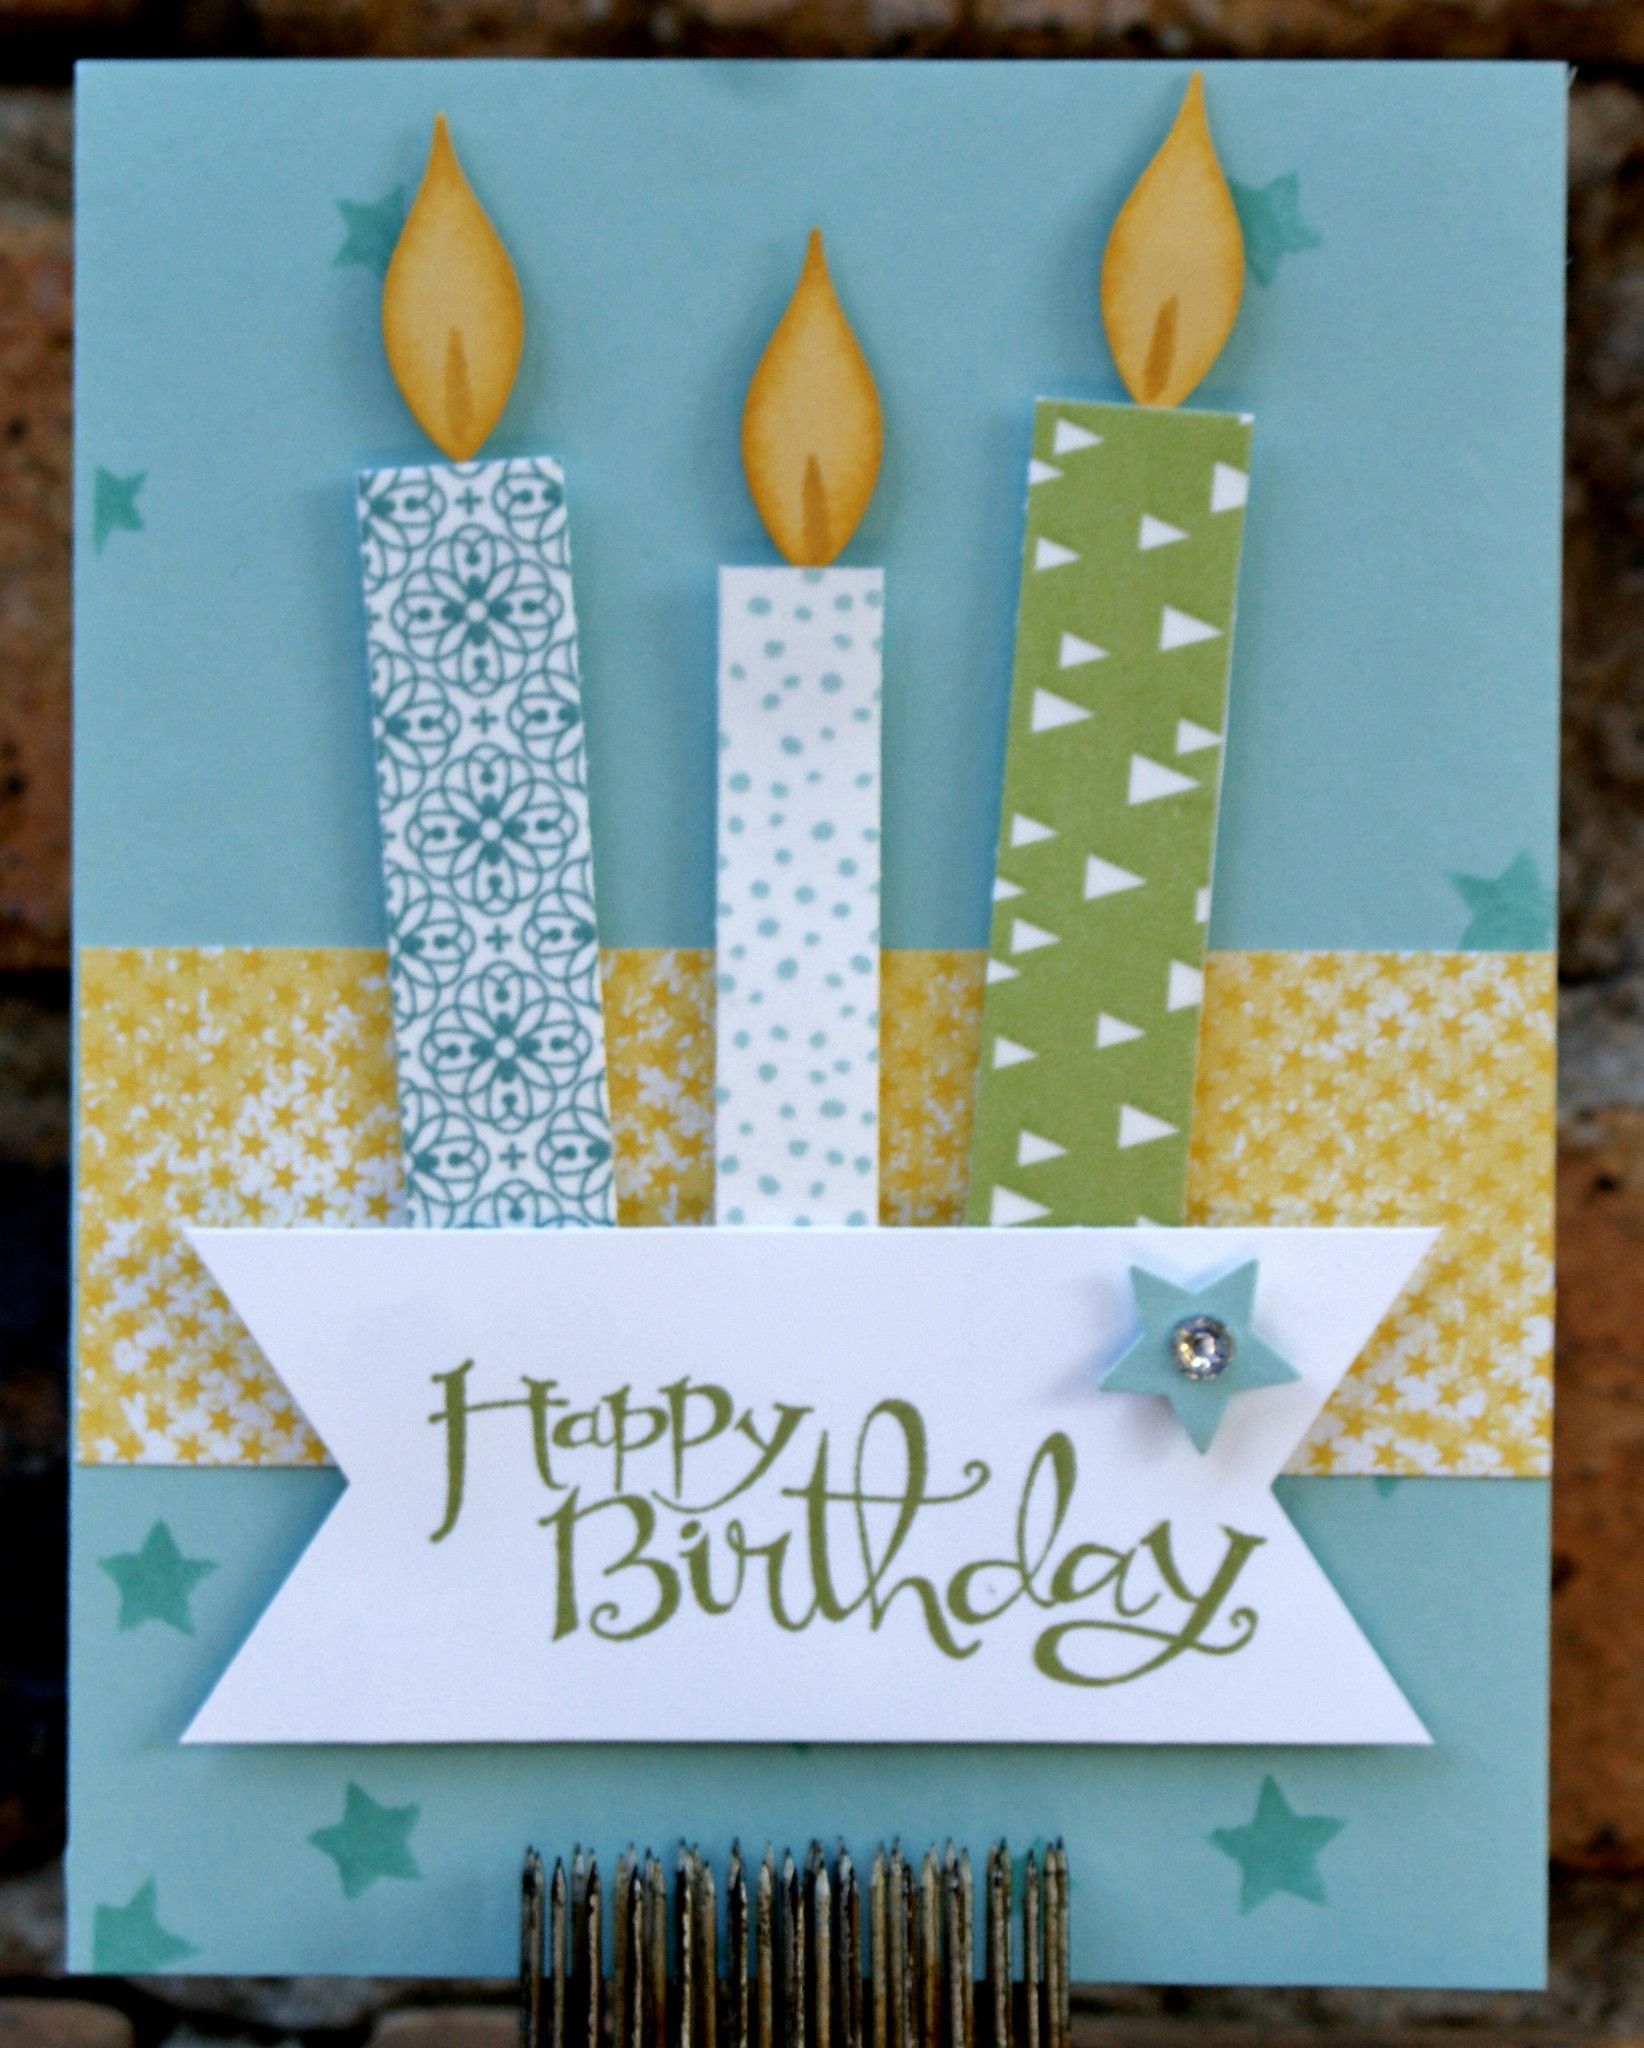 In todays class you will create four birthday cards with envelopes in todays class you will create four birthday cards with envelopes cards styles designs are m4hsunfo